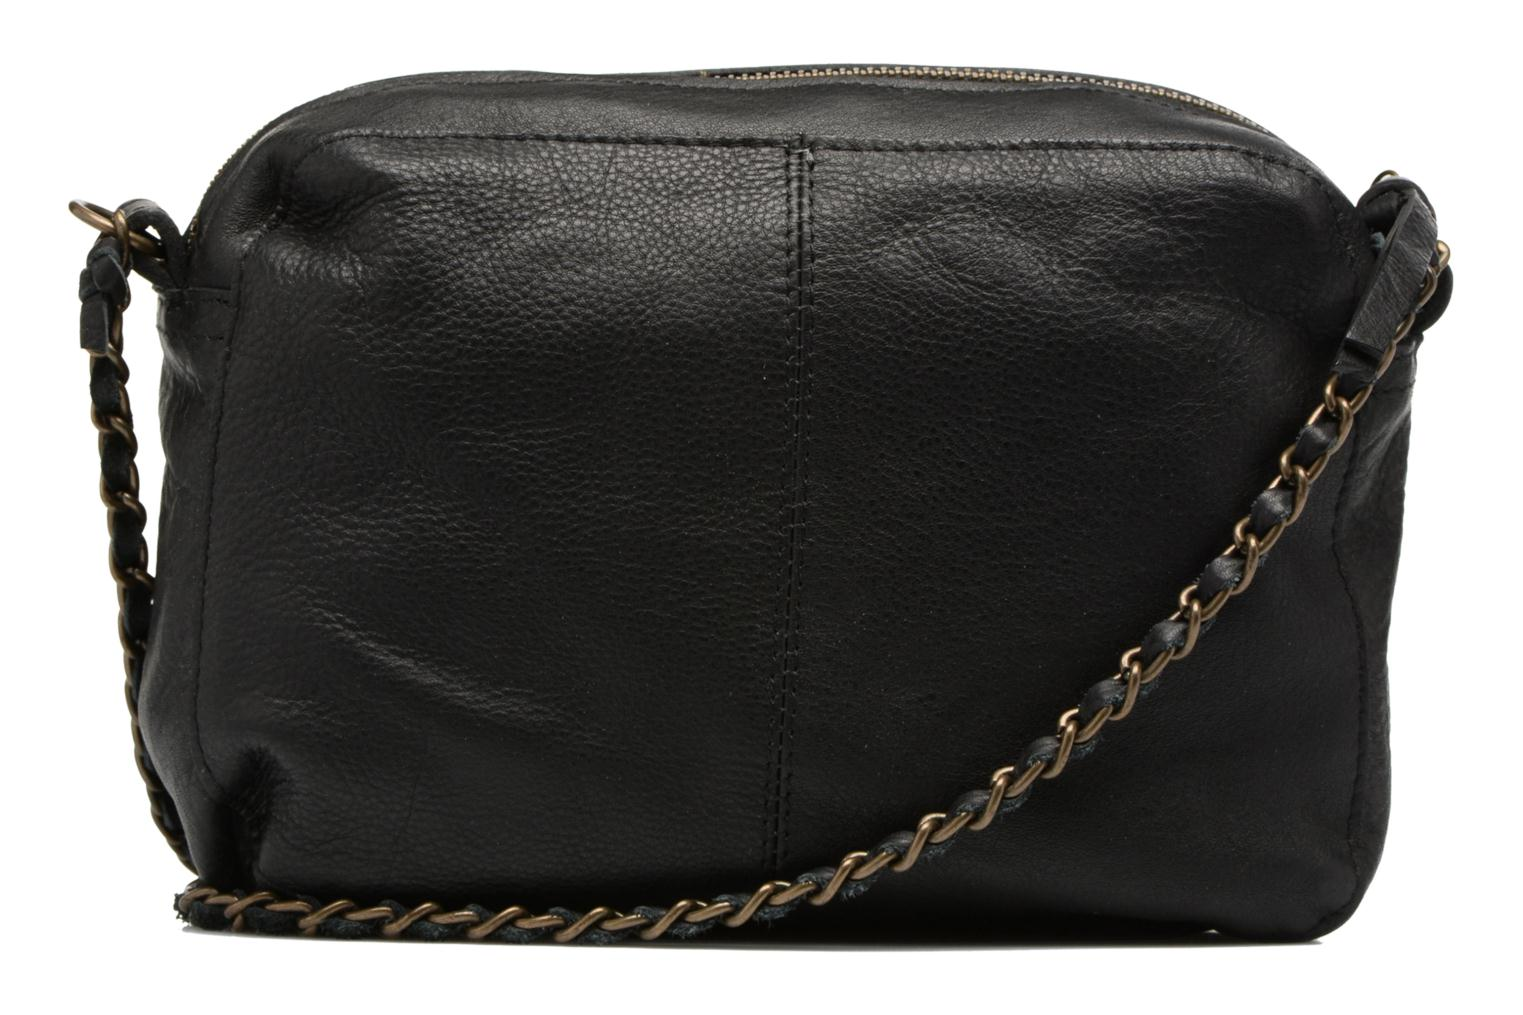 Handbags Pieces Naina Leather Crossover Black front view